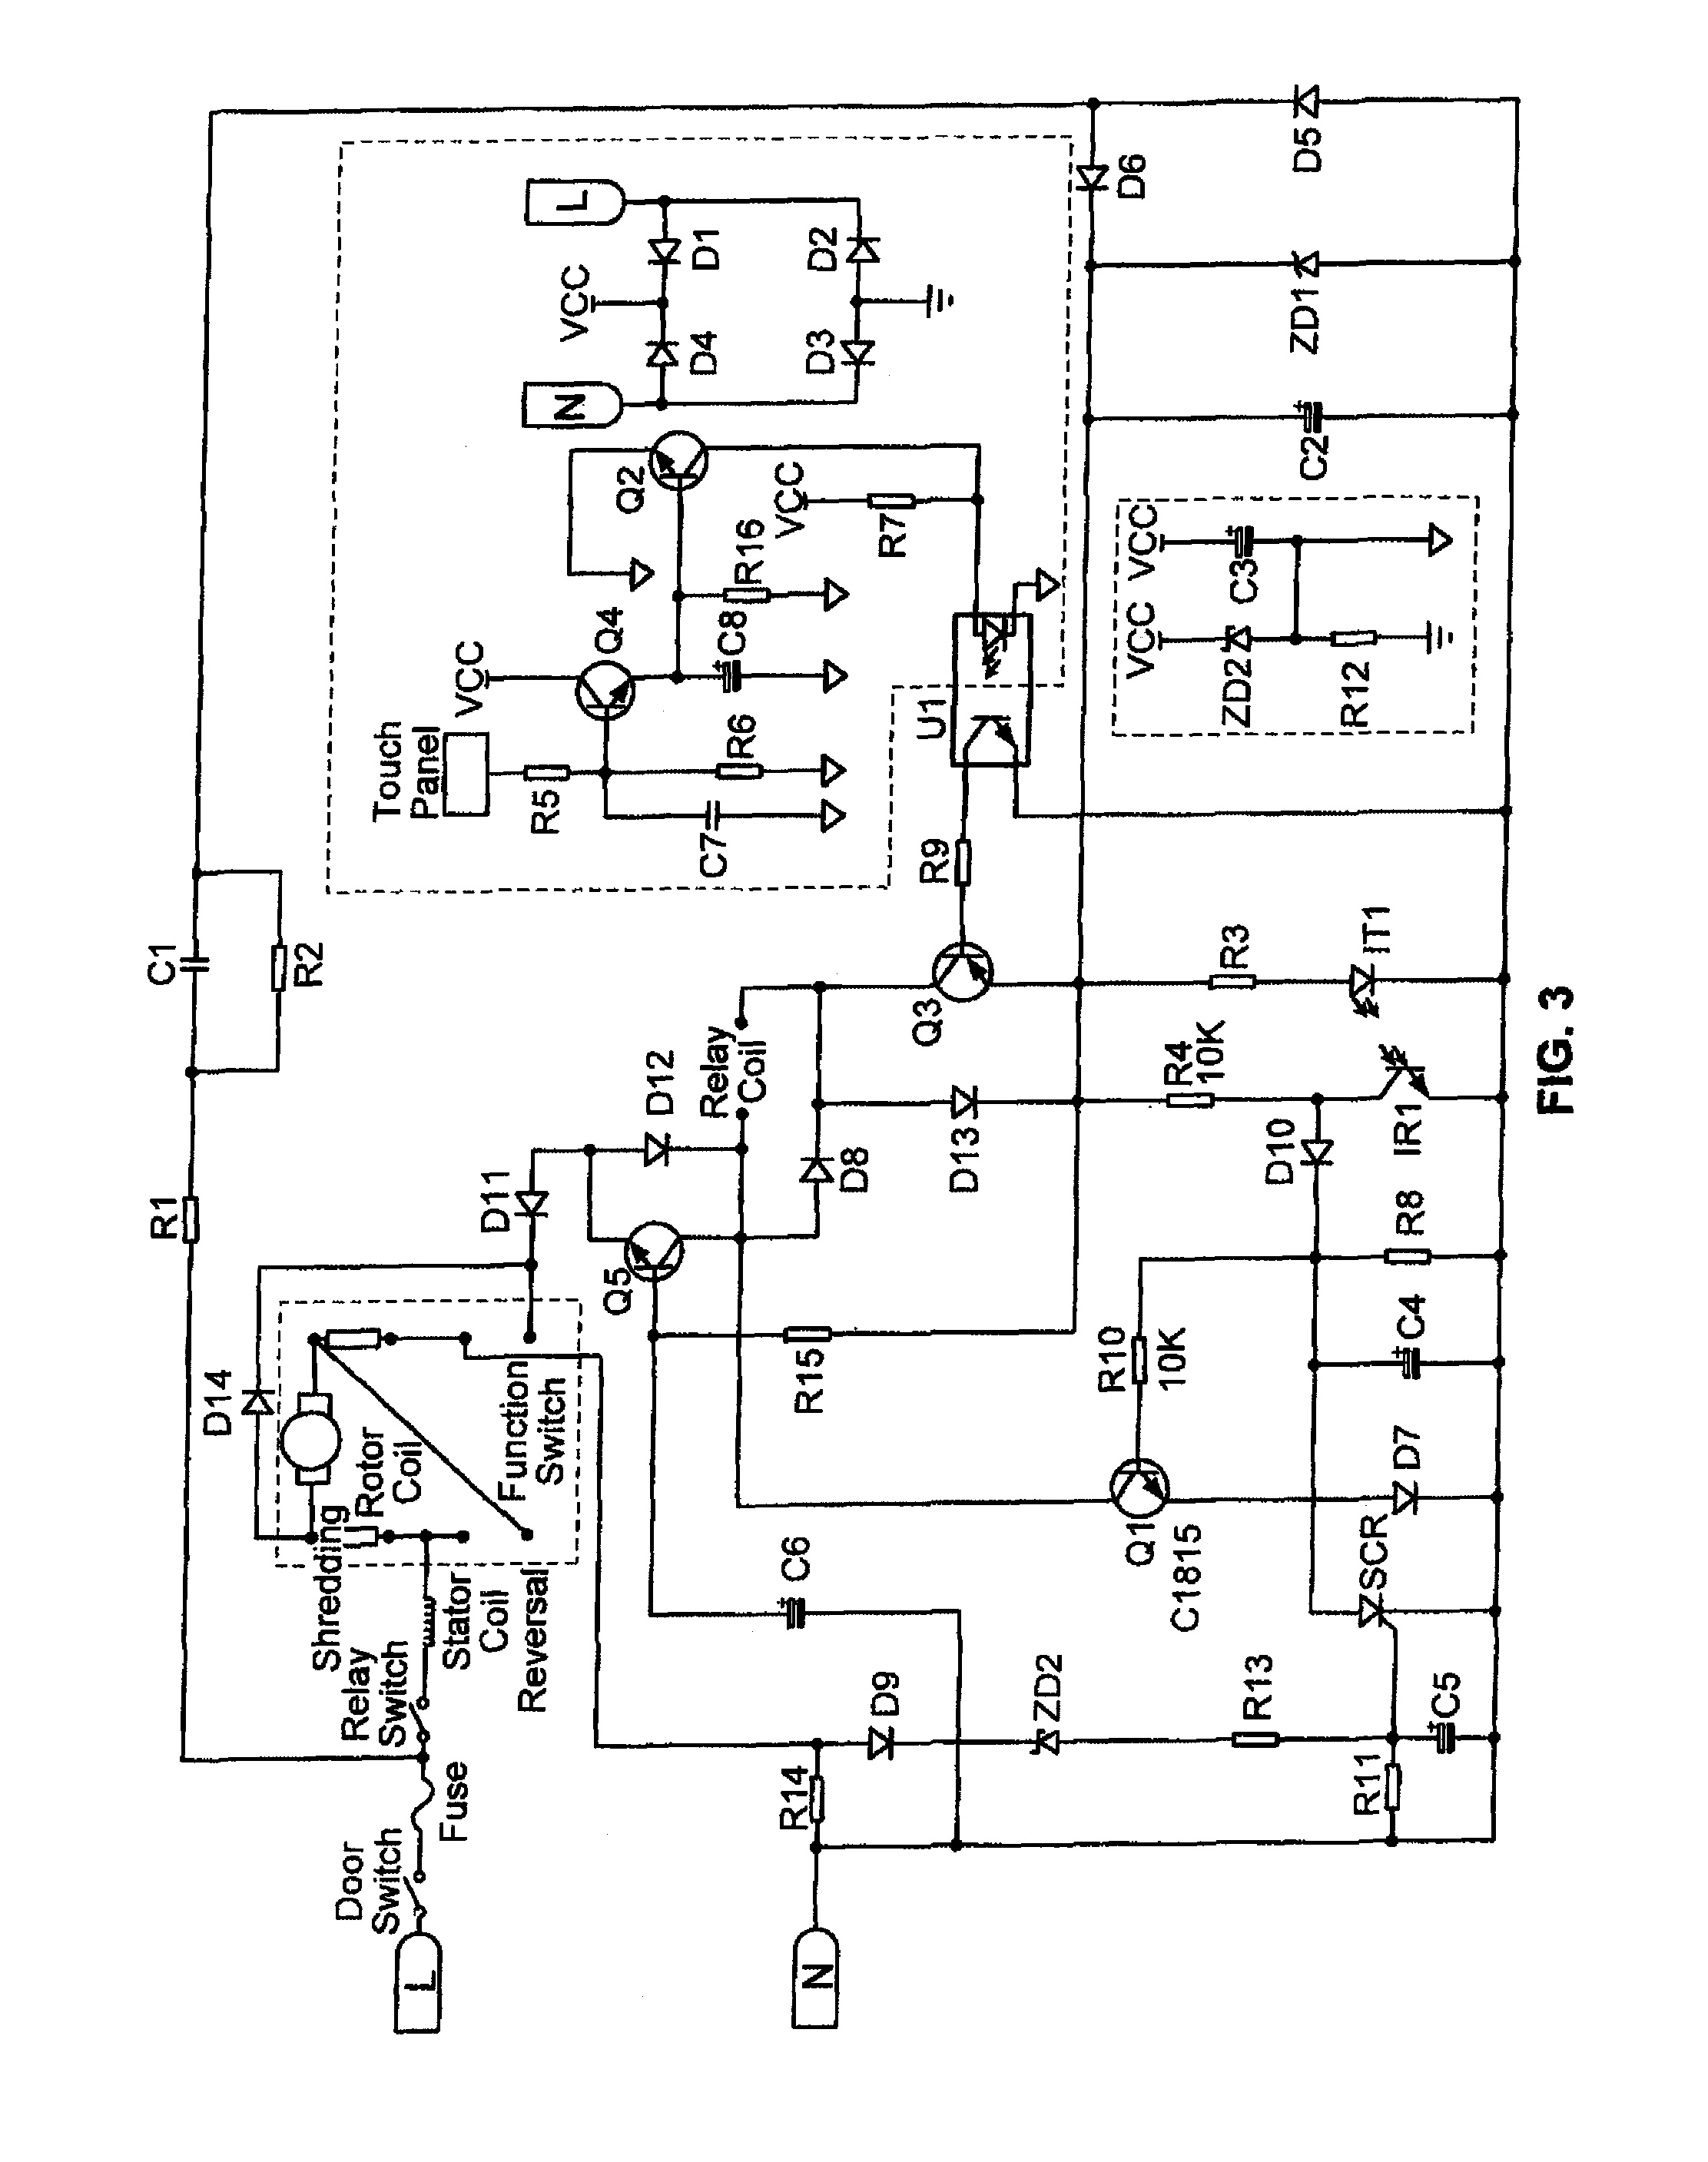 Ups Eaton Transfer Switch Wiring Diagram, Ups, Free Engine